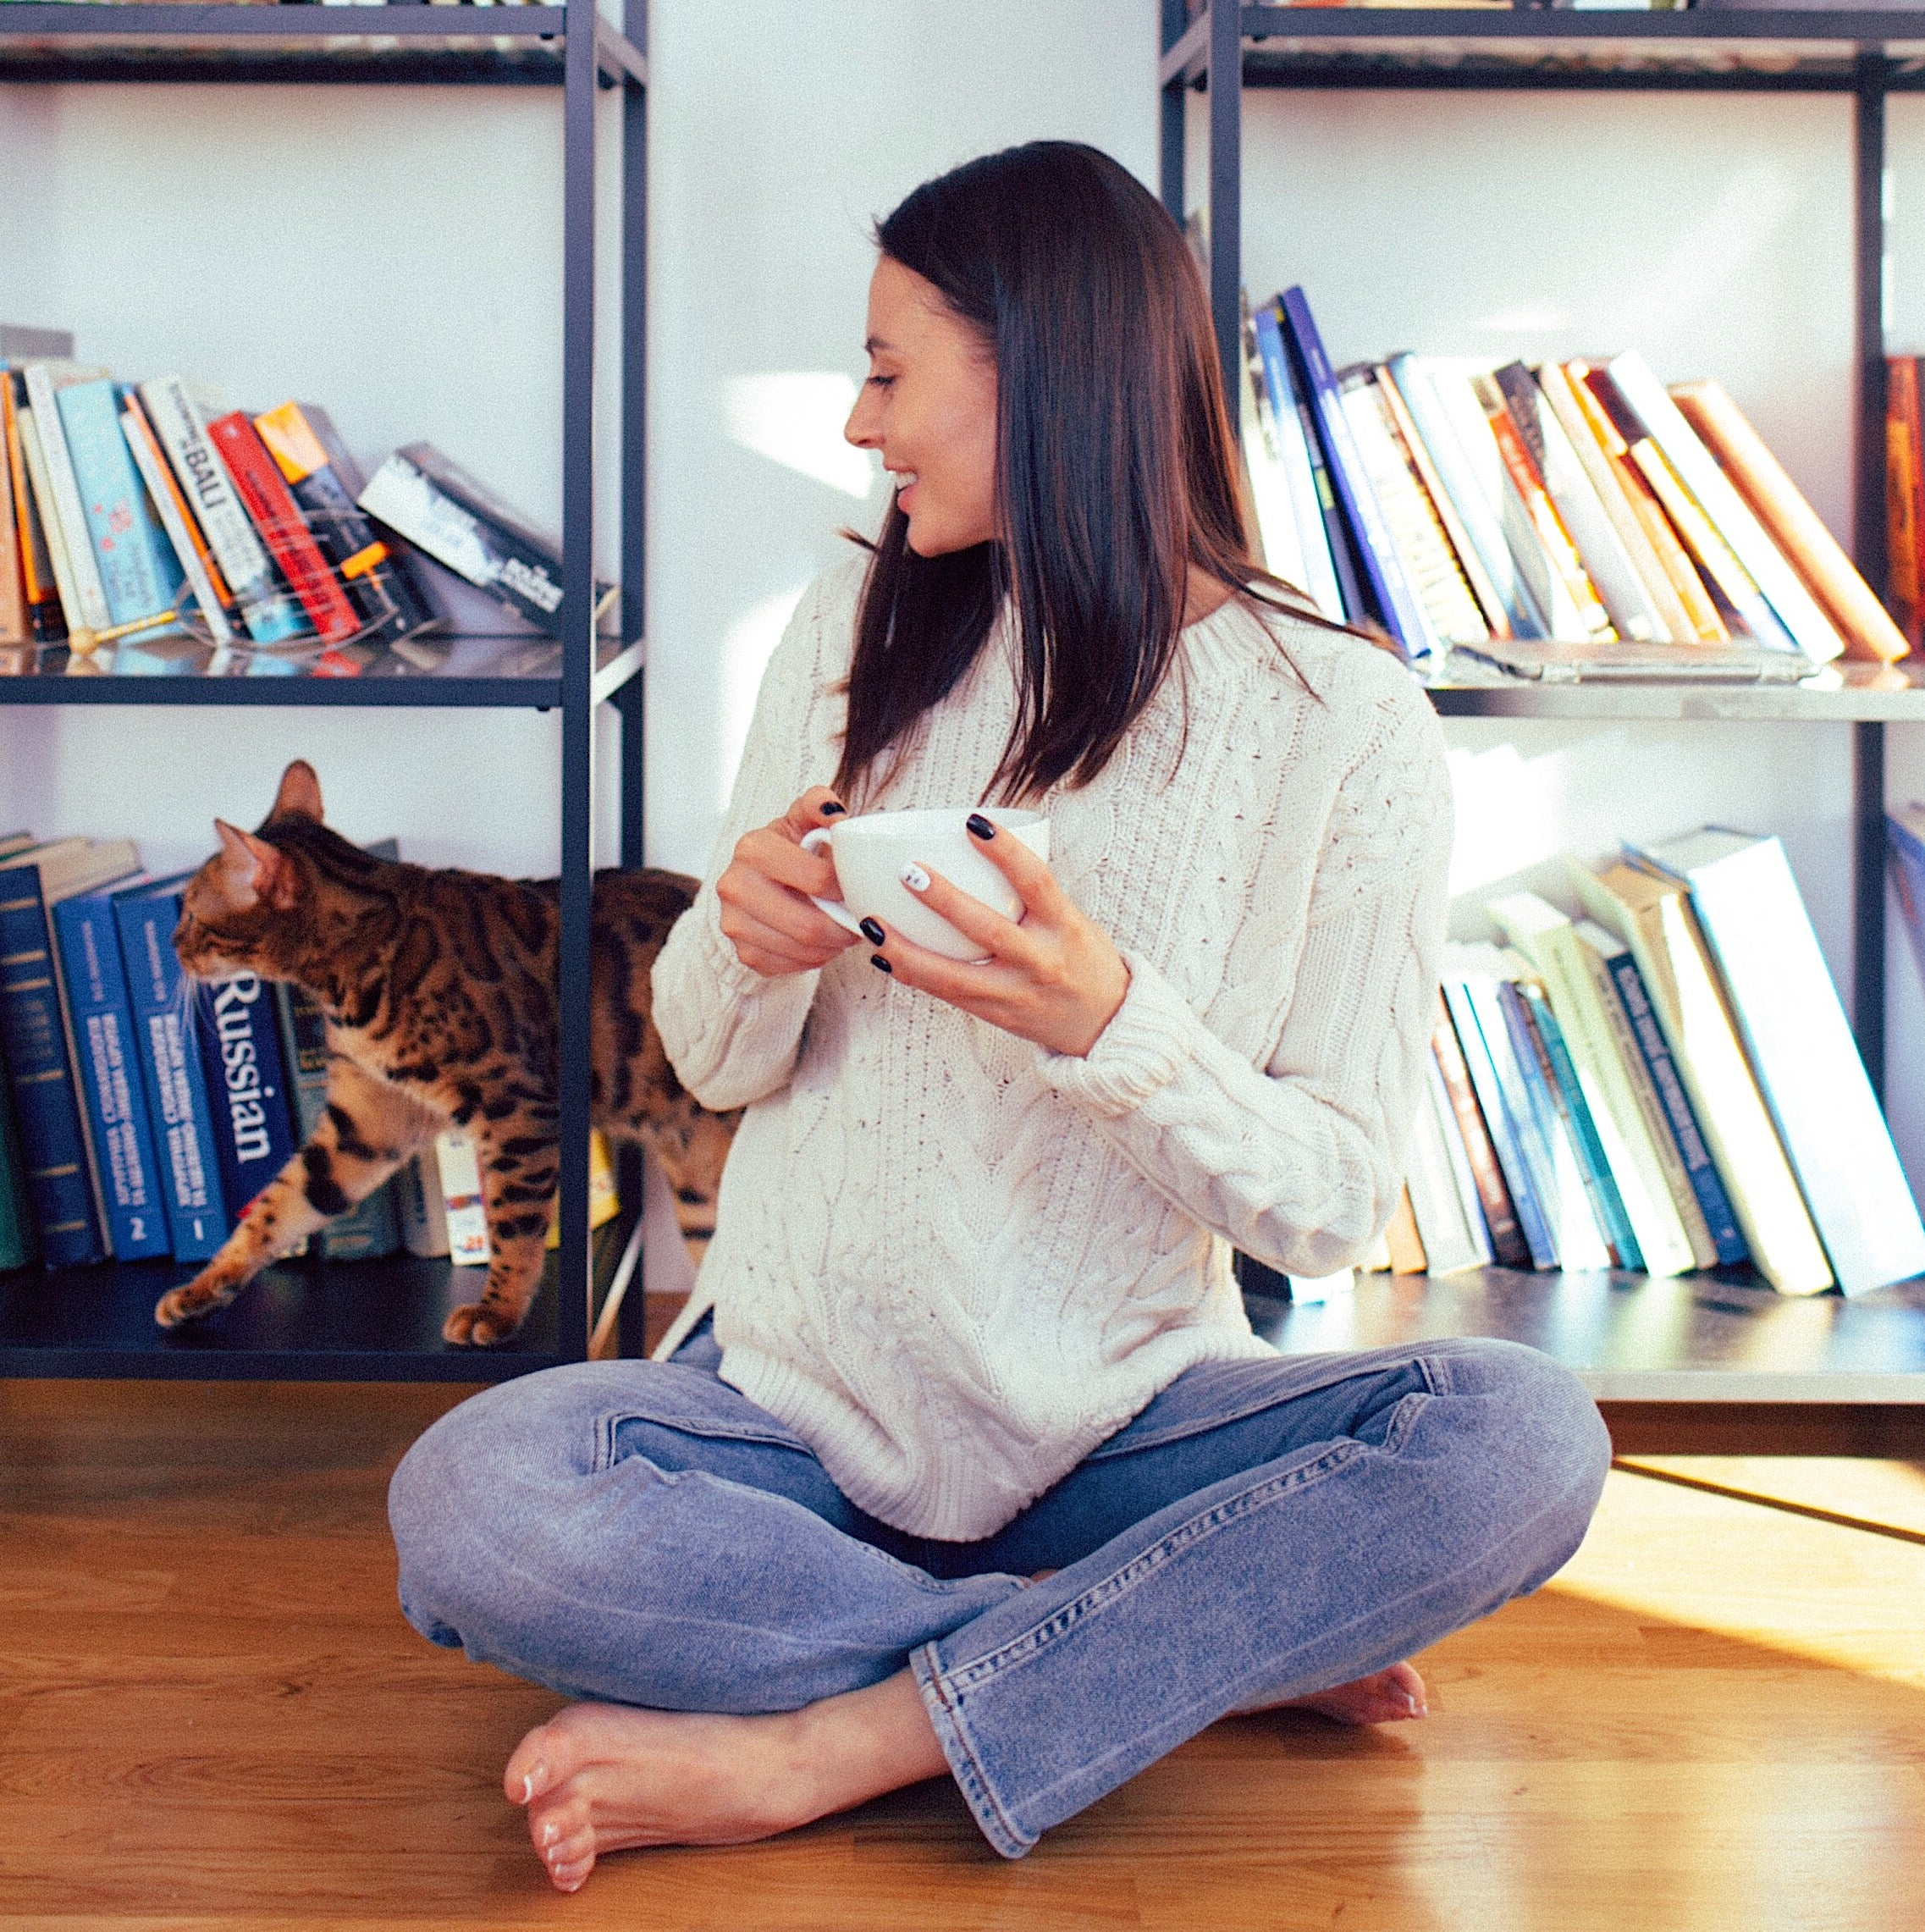 girl seats in front of the book shelf holding a cup of tea in her hands looking on the cat that is next to her